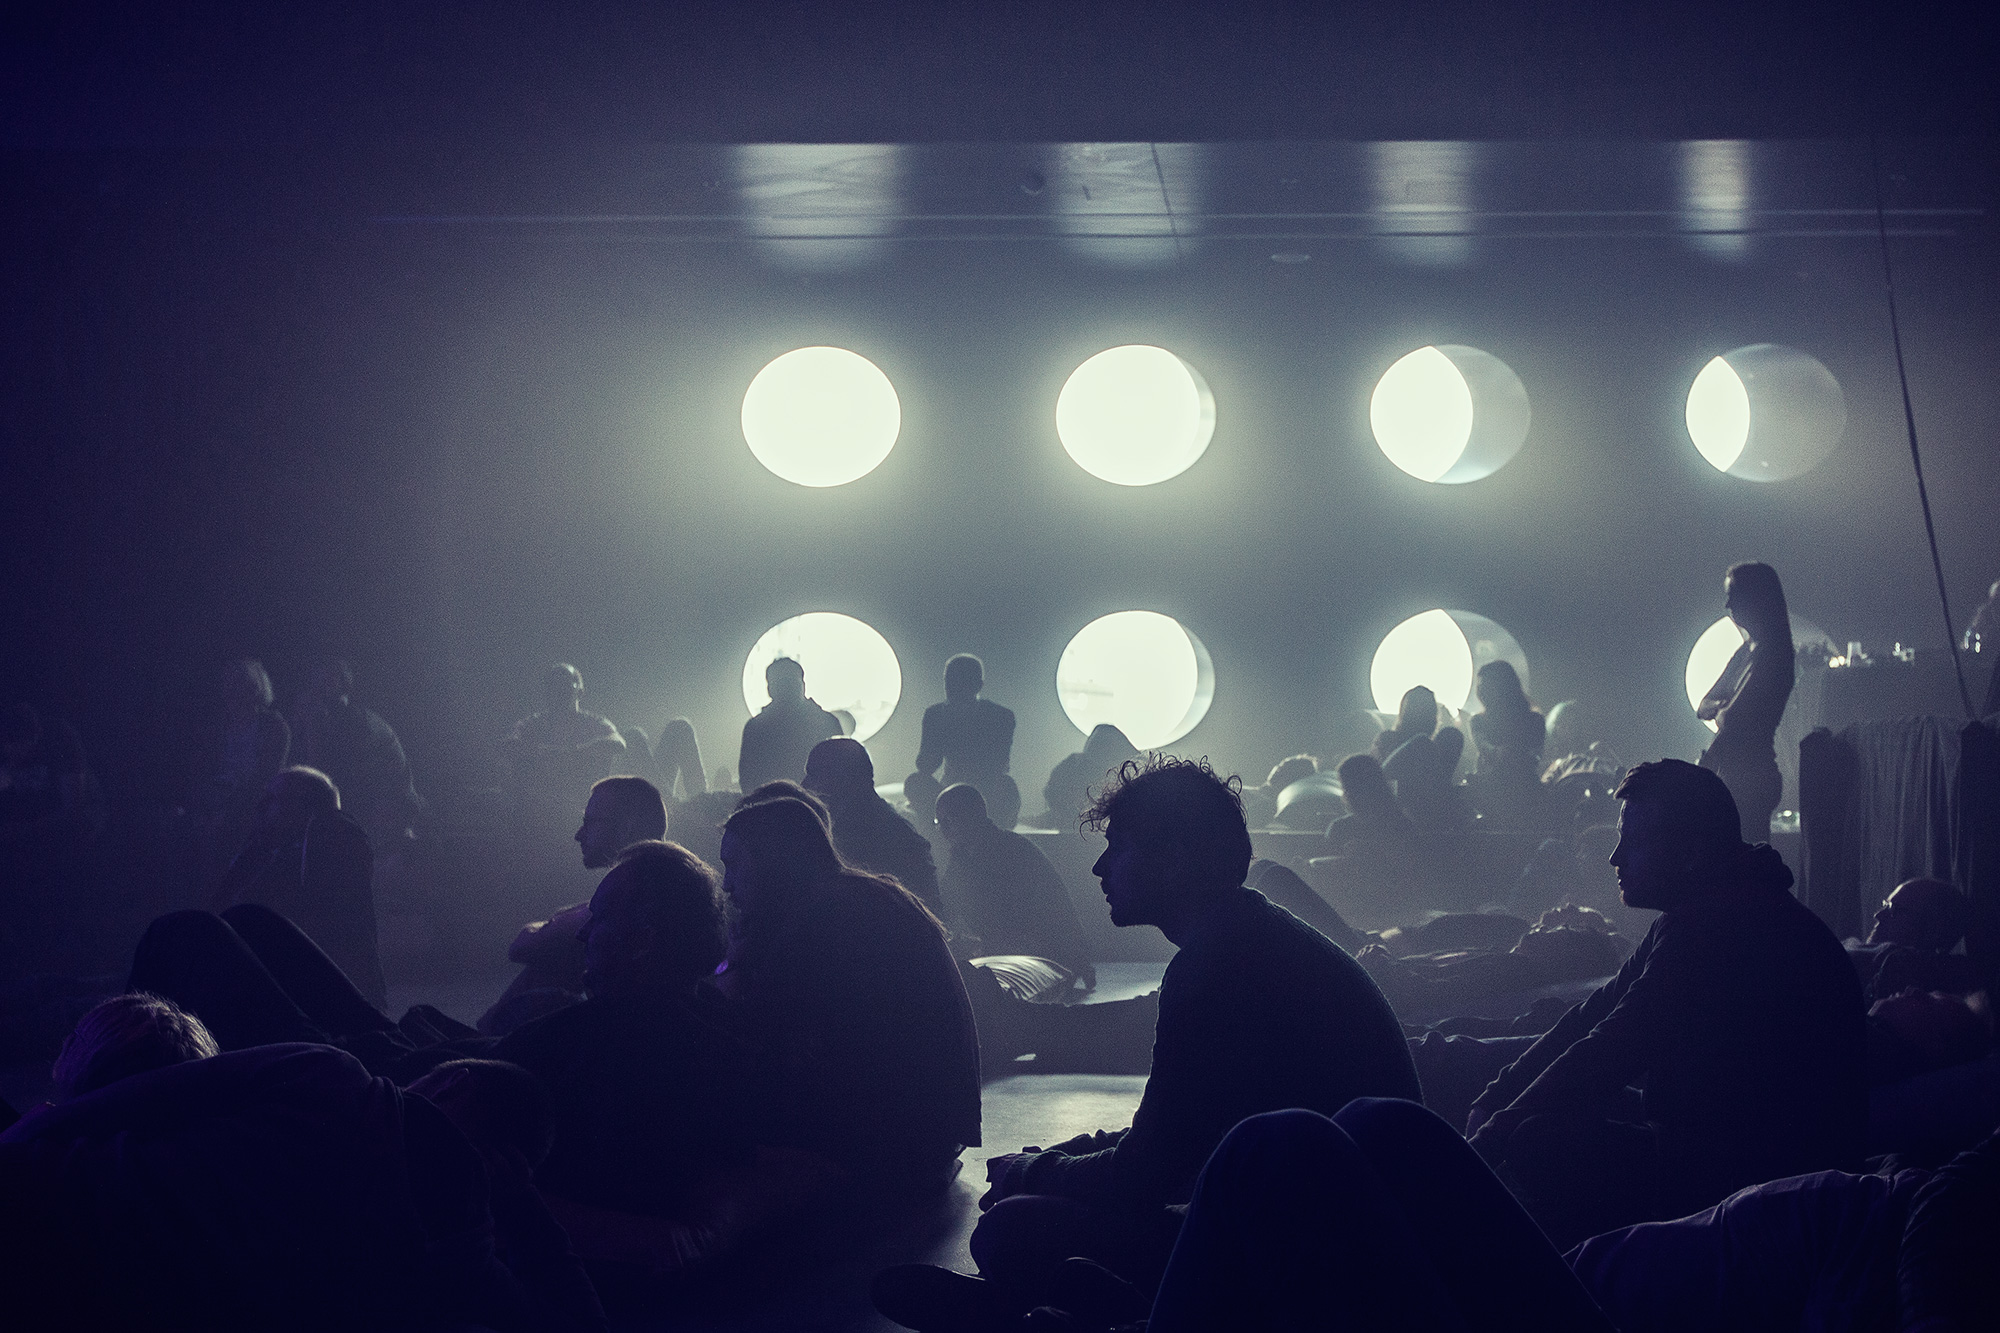 DRONE AT HOME: A one-time rebroadcast of the very first 24-HOUR DRONE at LGW14